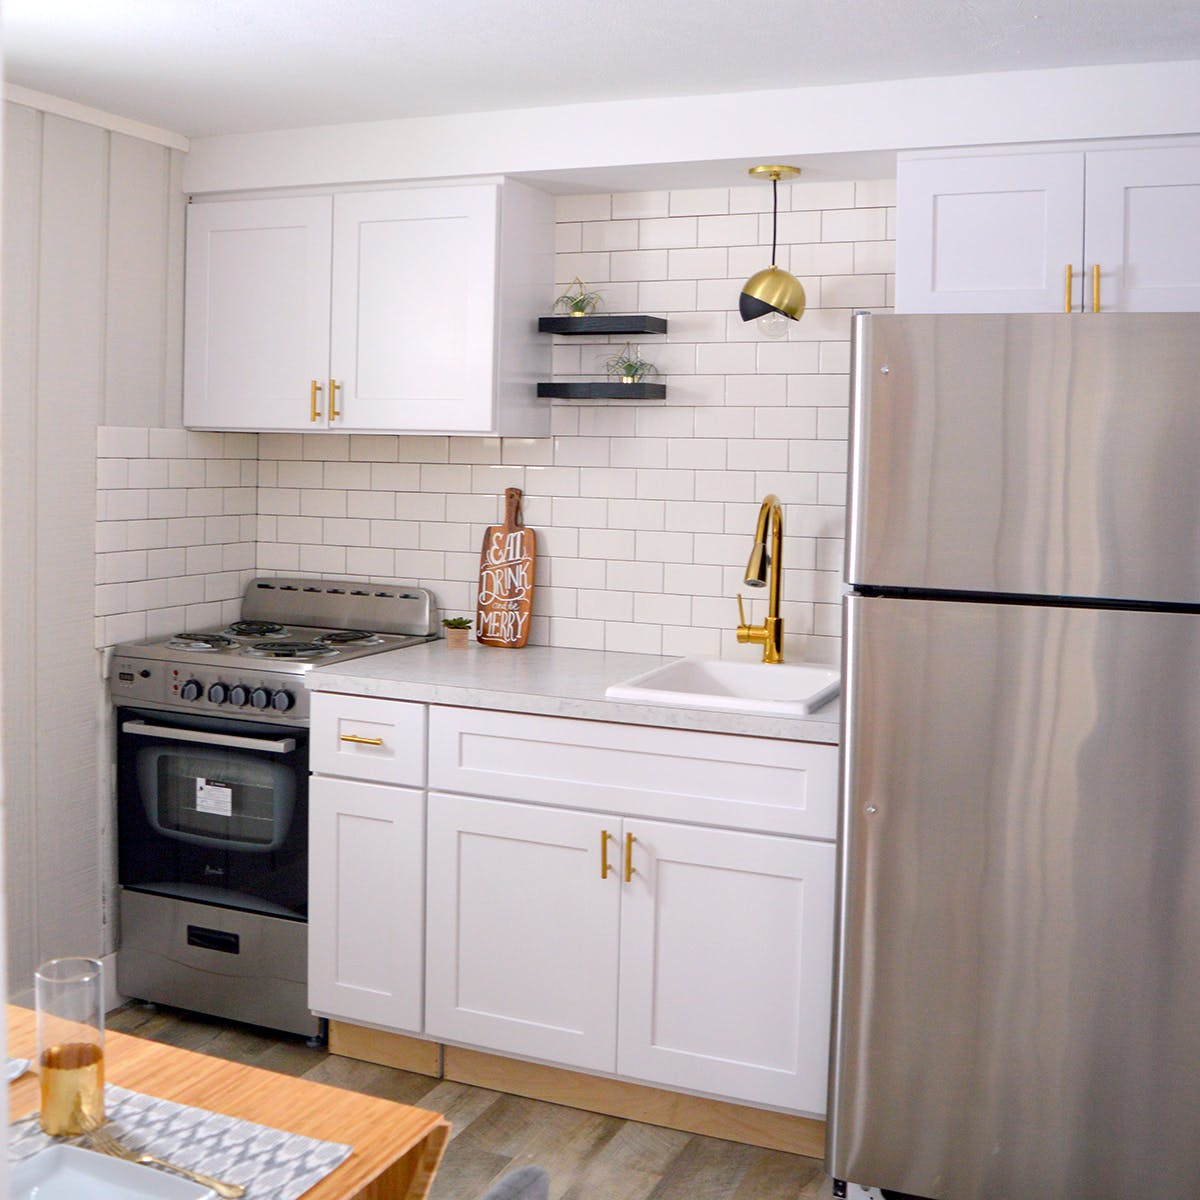 Kitchenette luxury hotel room